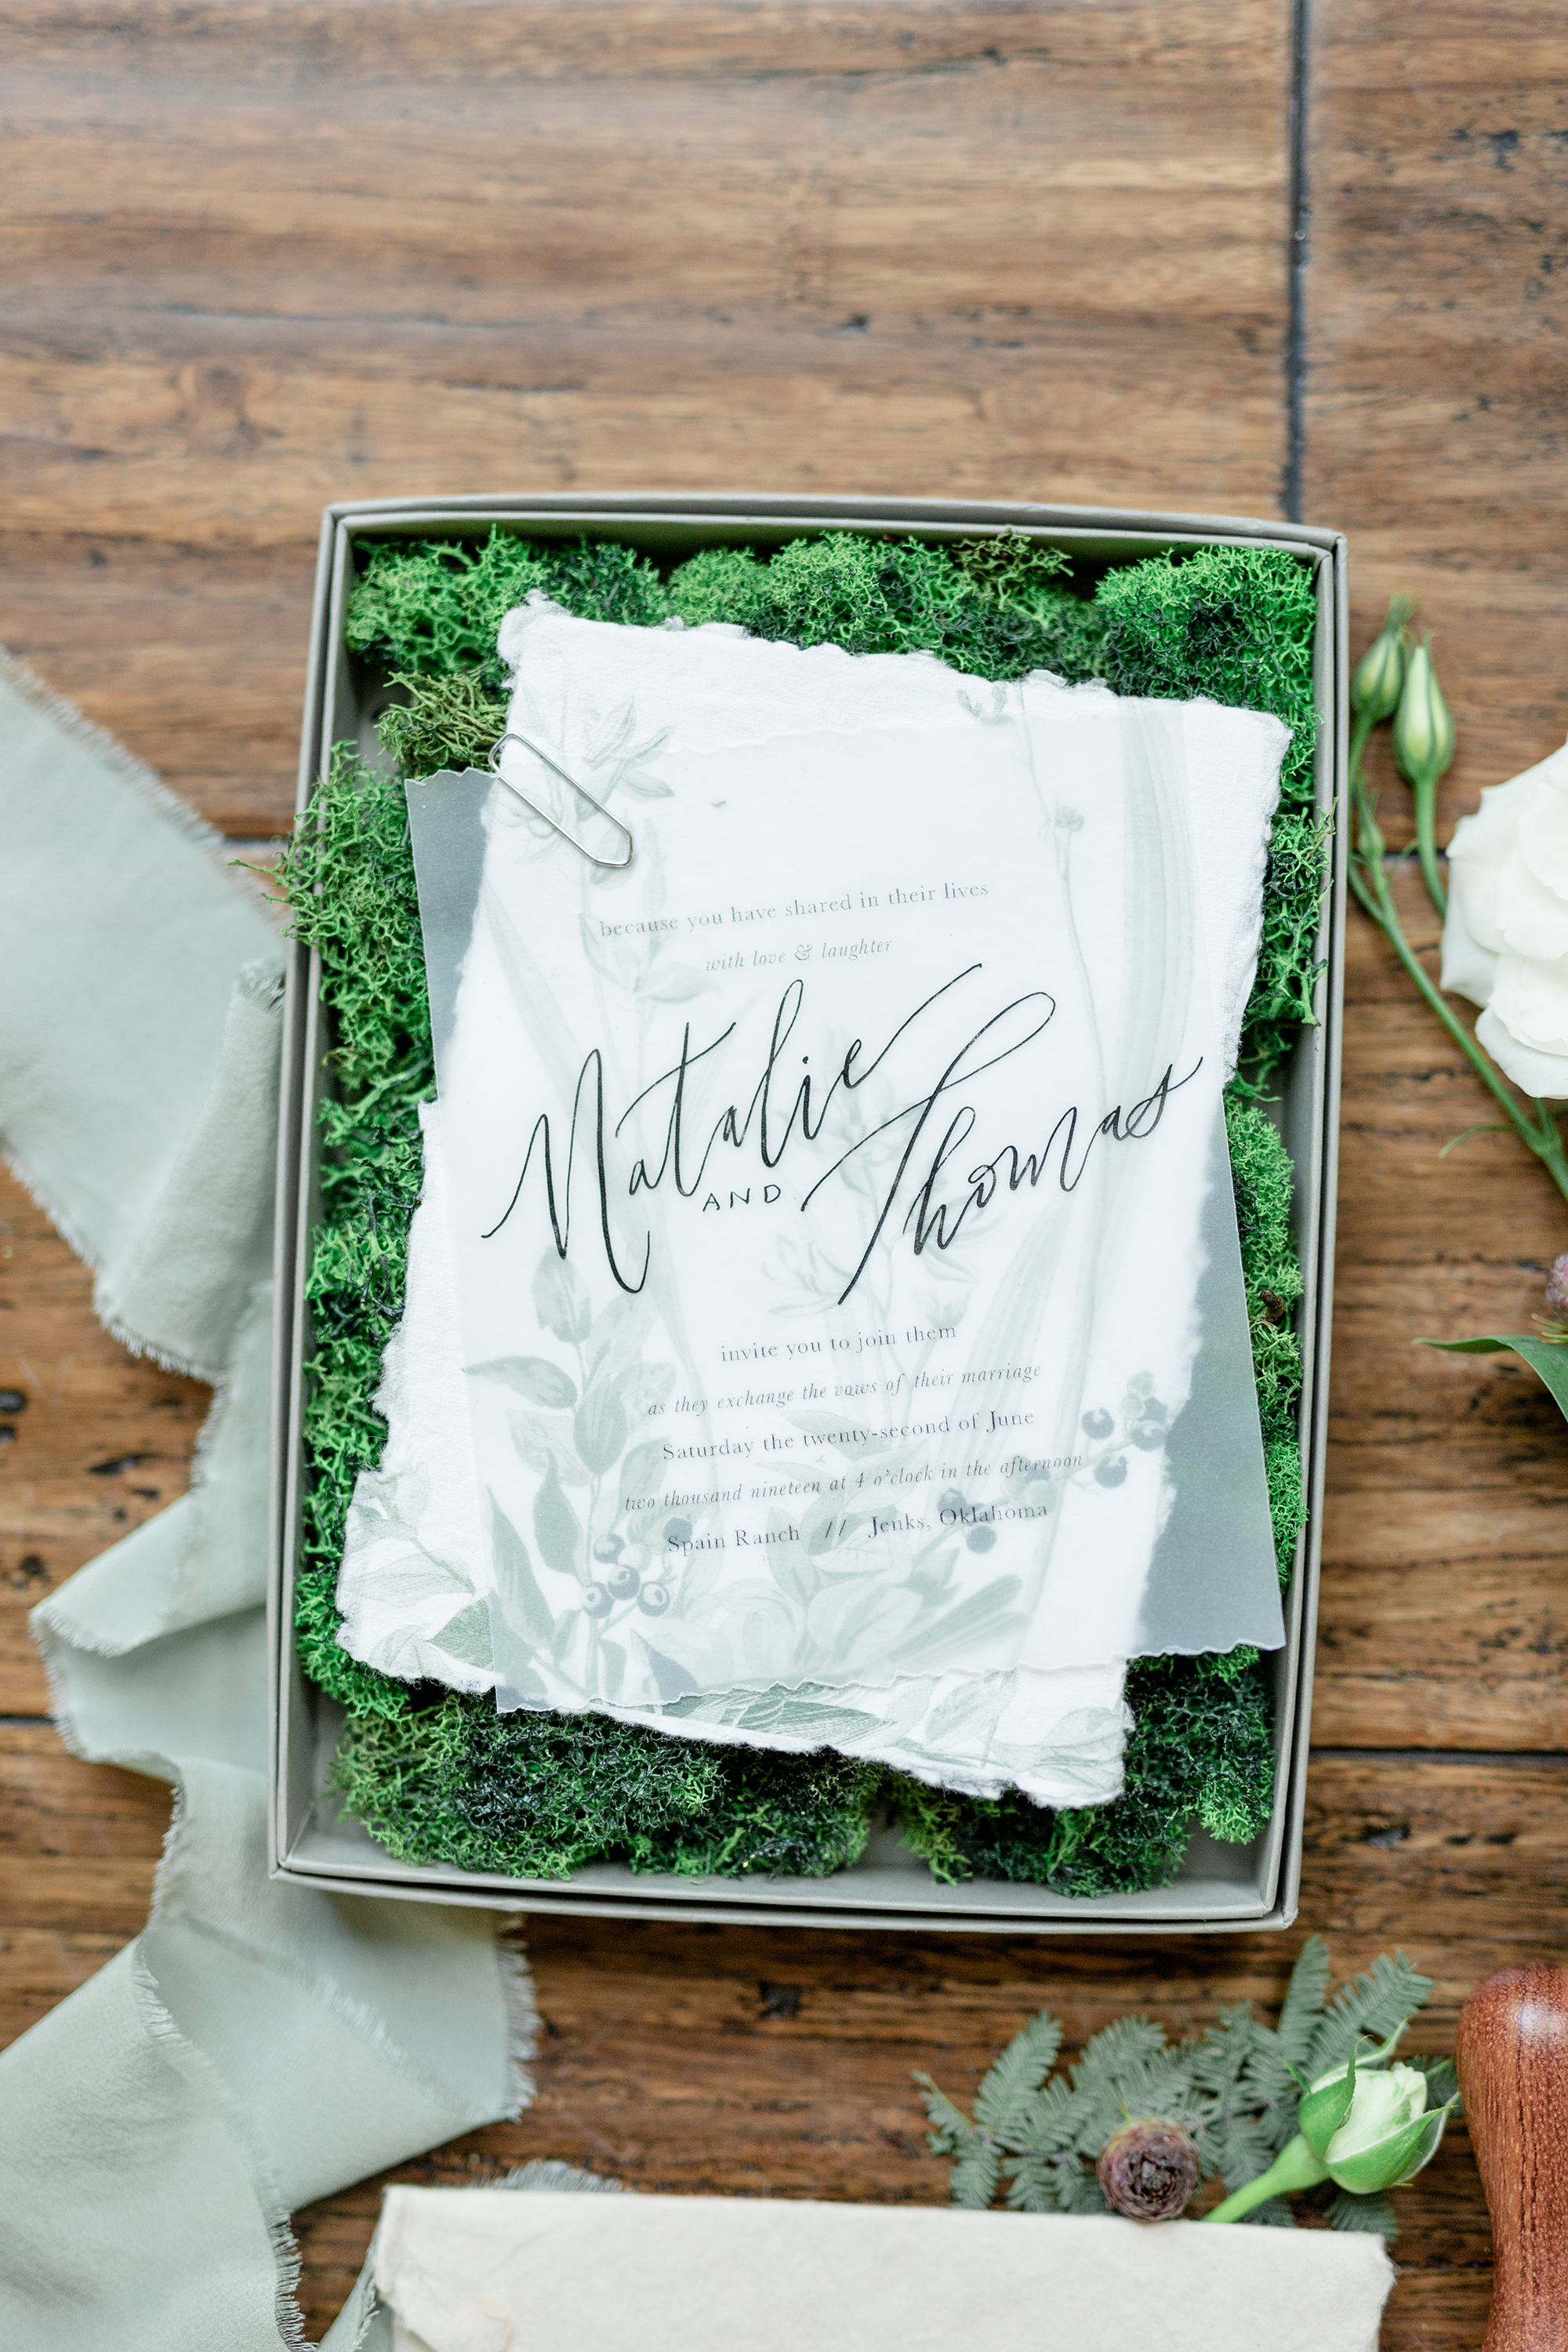 Mossy Boxed Wedding Invitations